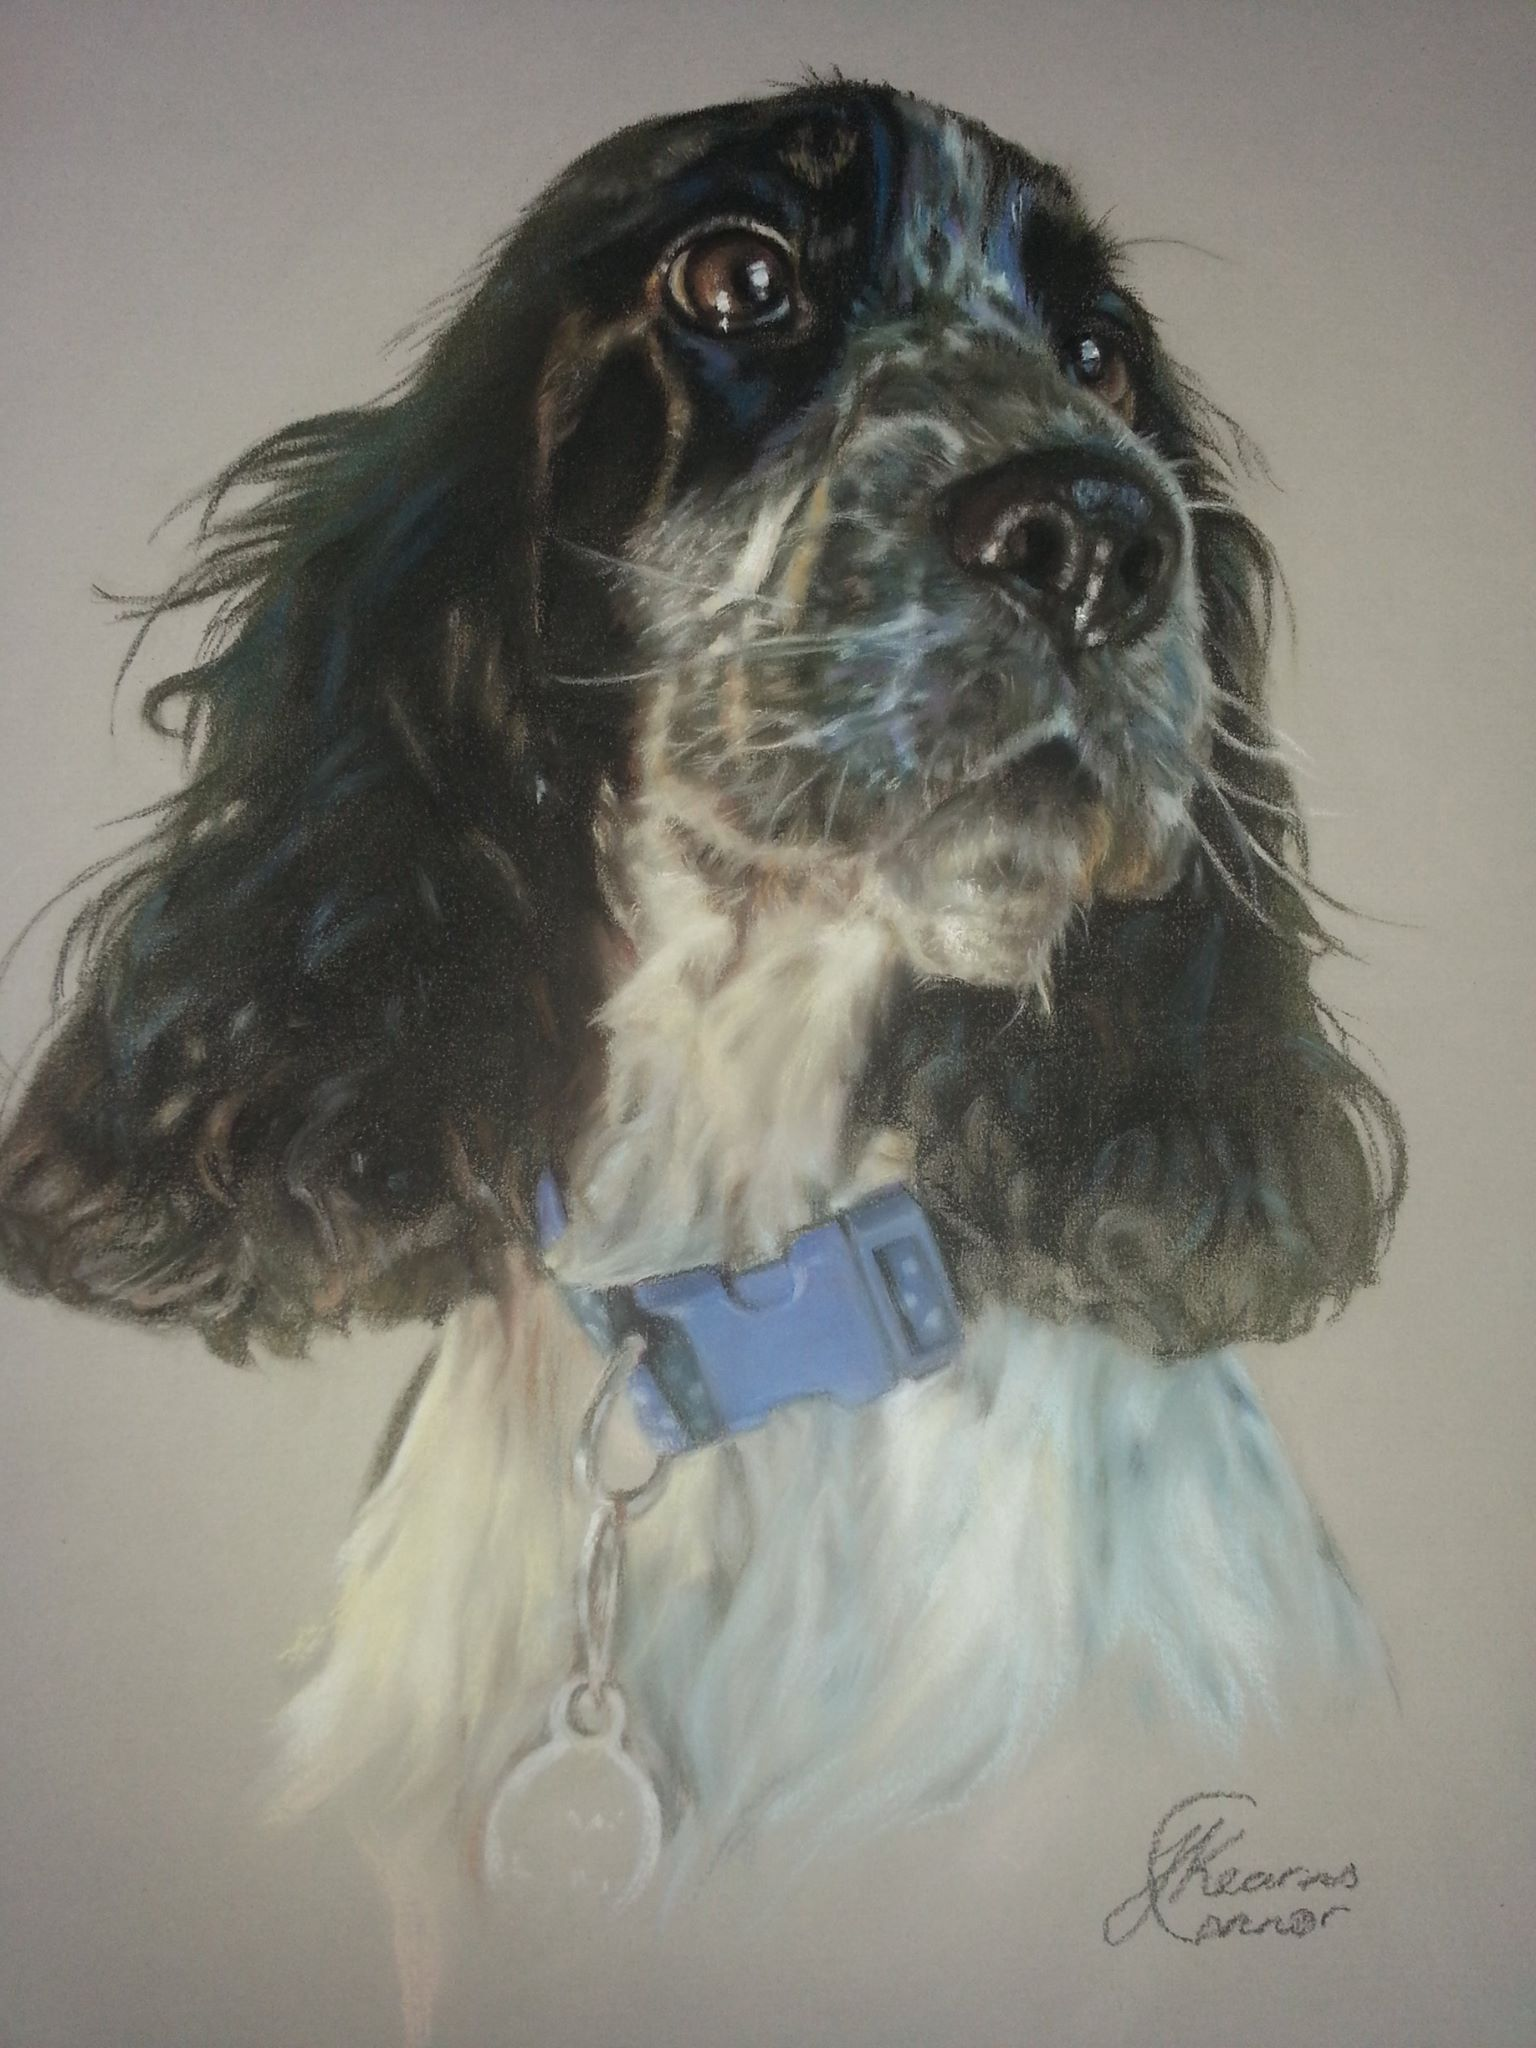 My Dog Ginny Blue Roan Cocker Spaniel Painted In Pastels